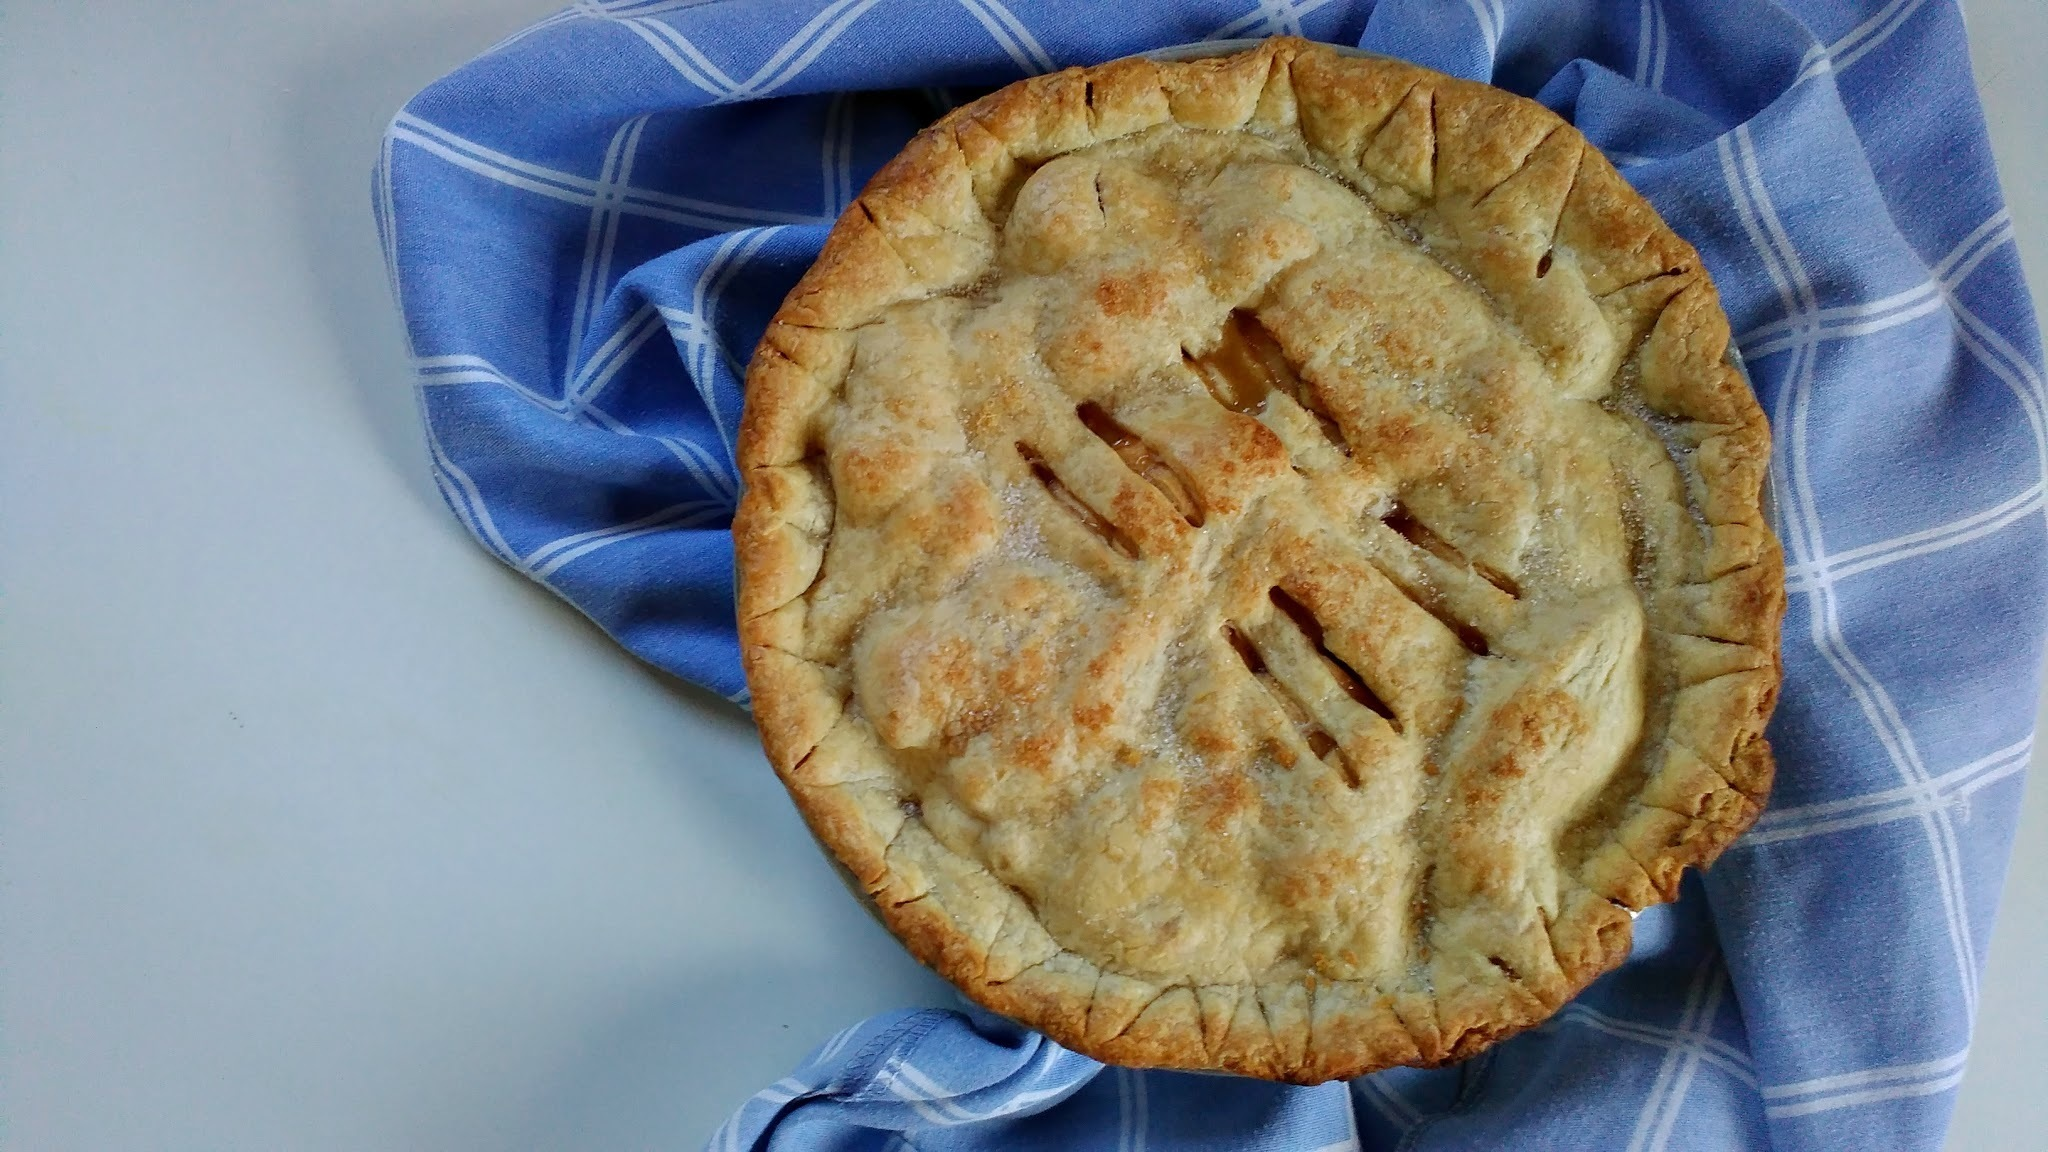 Tarte de maçã americana [apple pie]